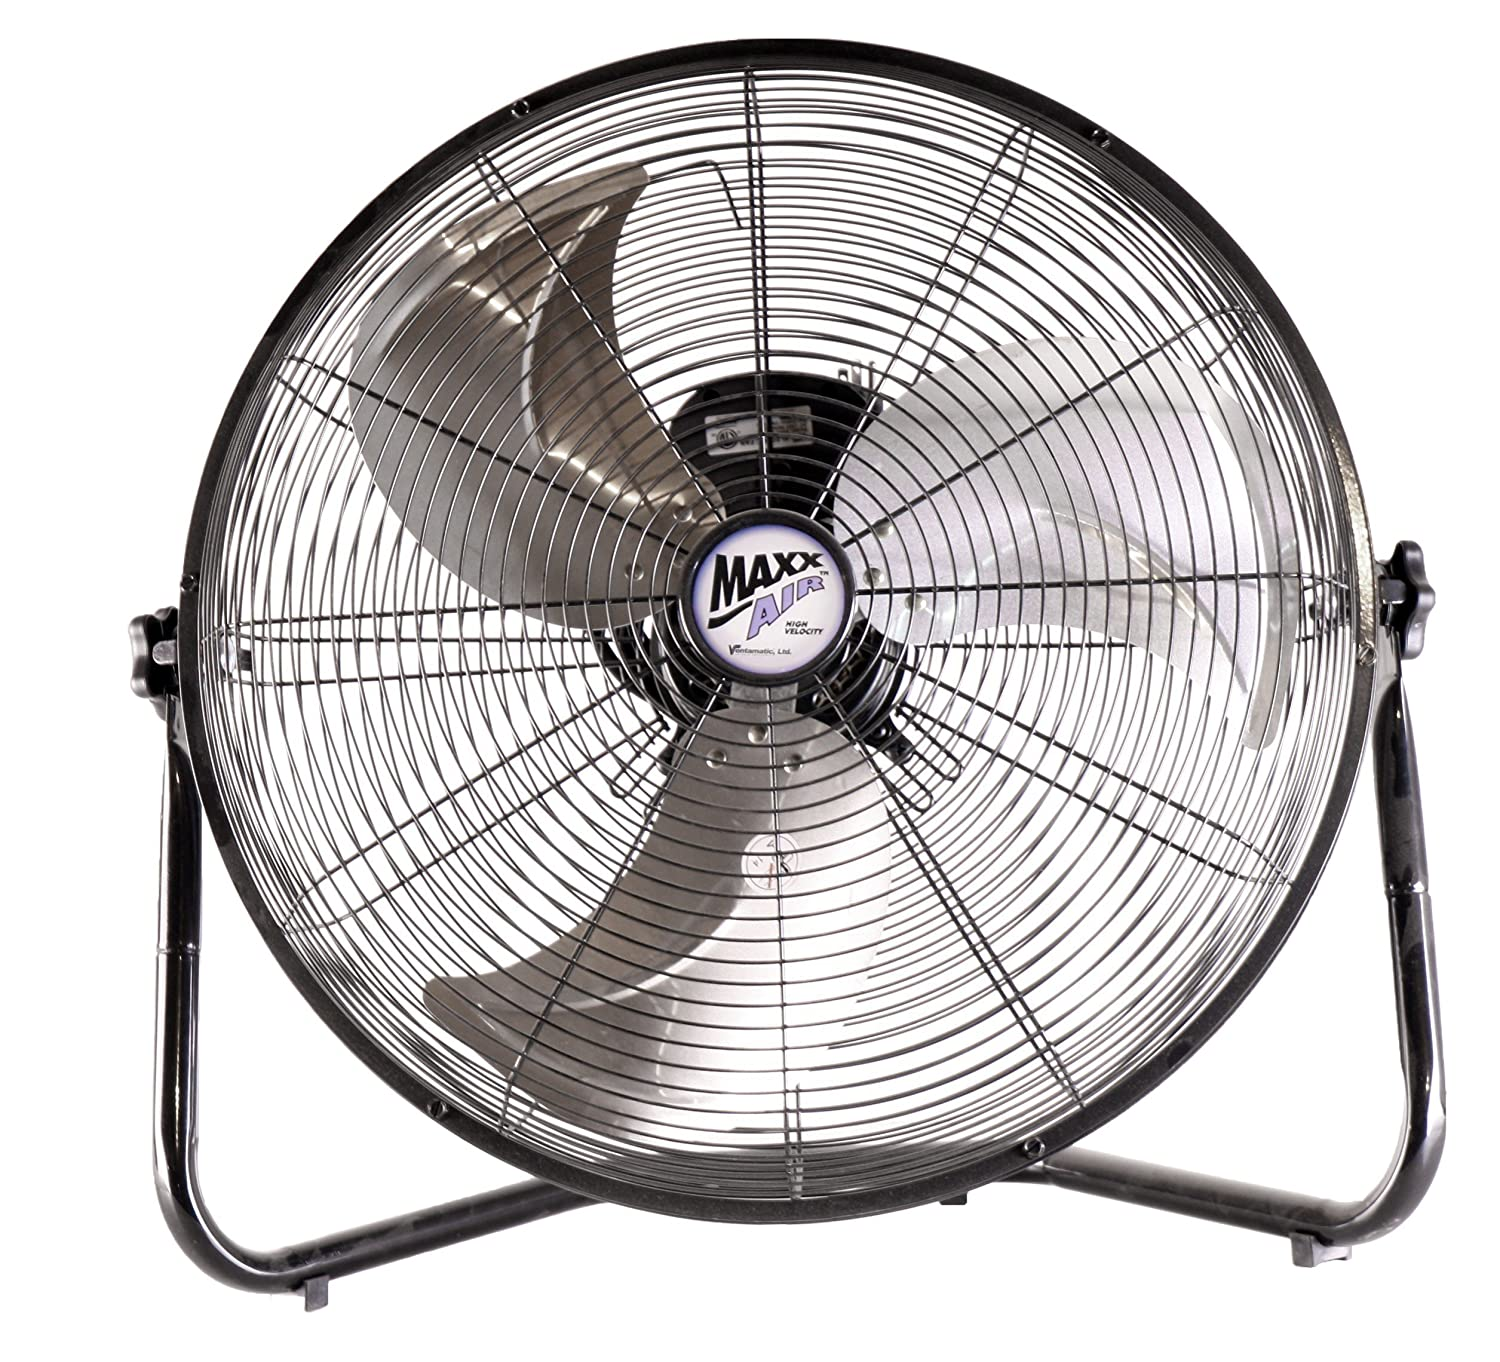 MaxxAir HVFF 20 UPS: The Floor Fan to Cover Every Corner